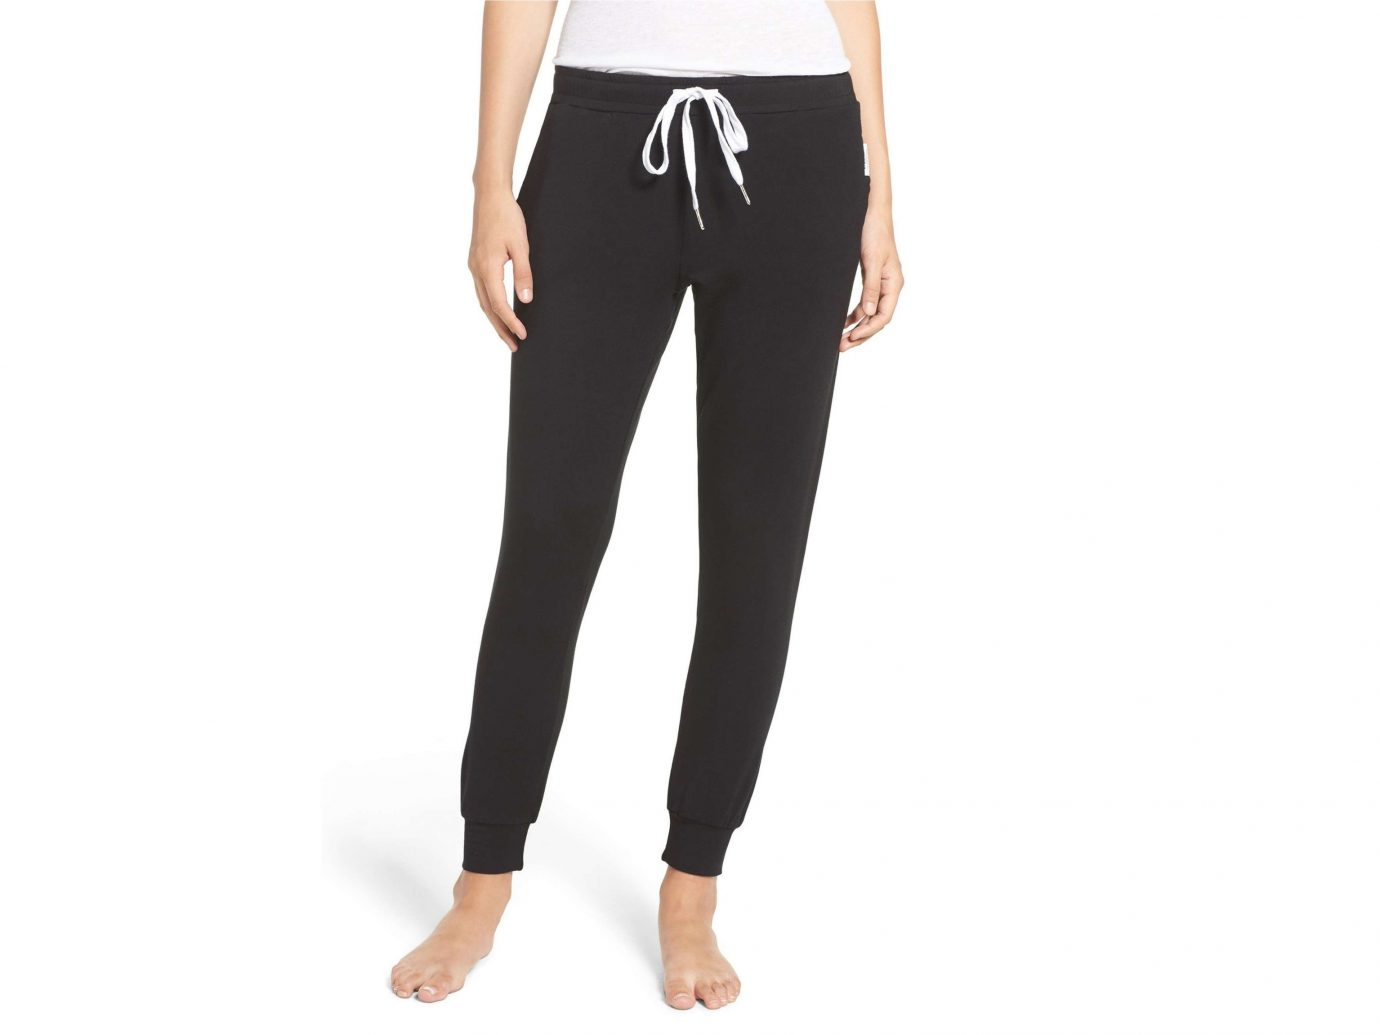 Health + Wellness Style + Design Travel Shop clothing trouser active pants person joint waist tights leggings trousers jeans human leg active undergarment abdomen sportswear posing